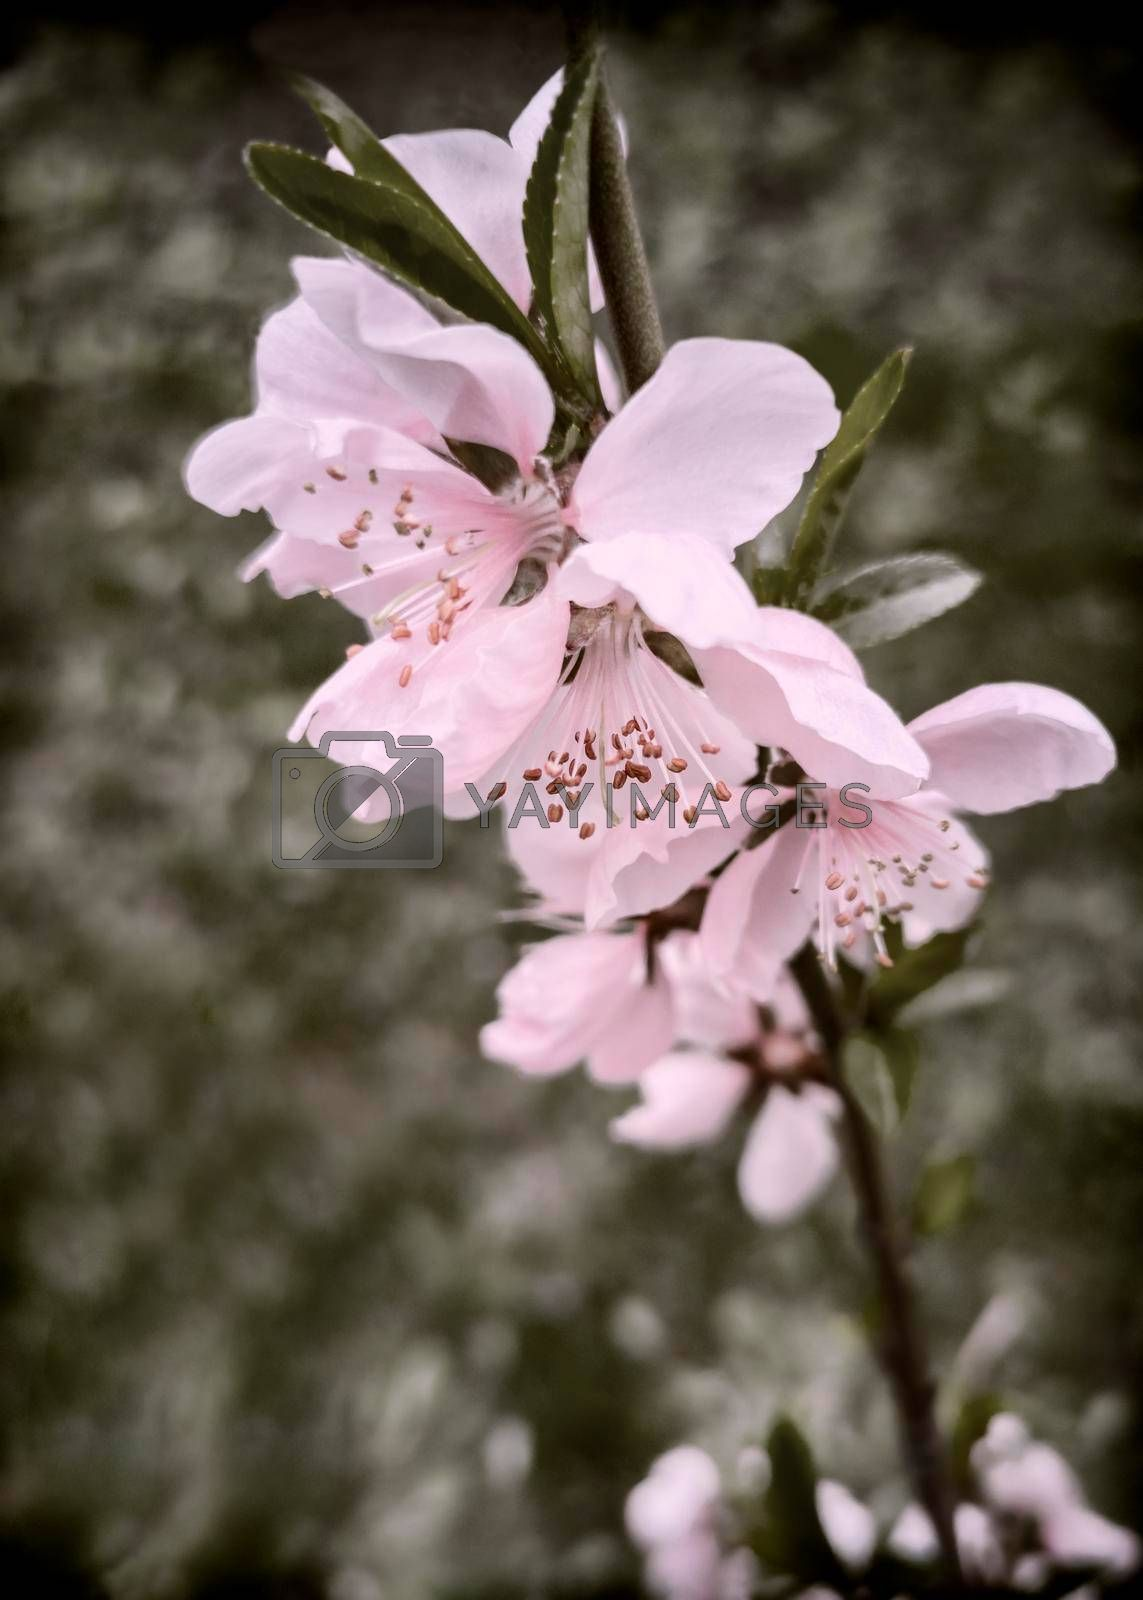 Royalty free image of Peach blossom branch with beautiful pink flowers by georgina198